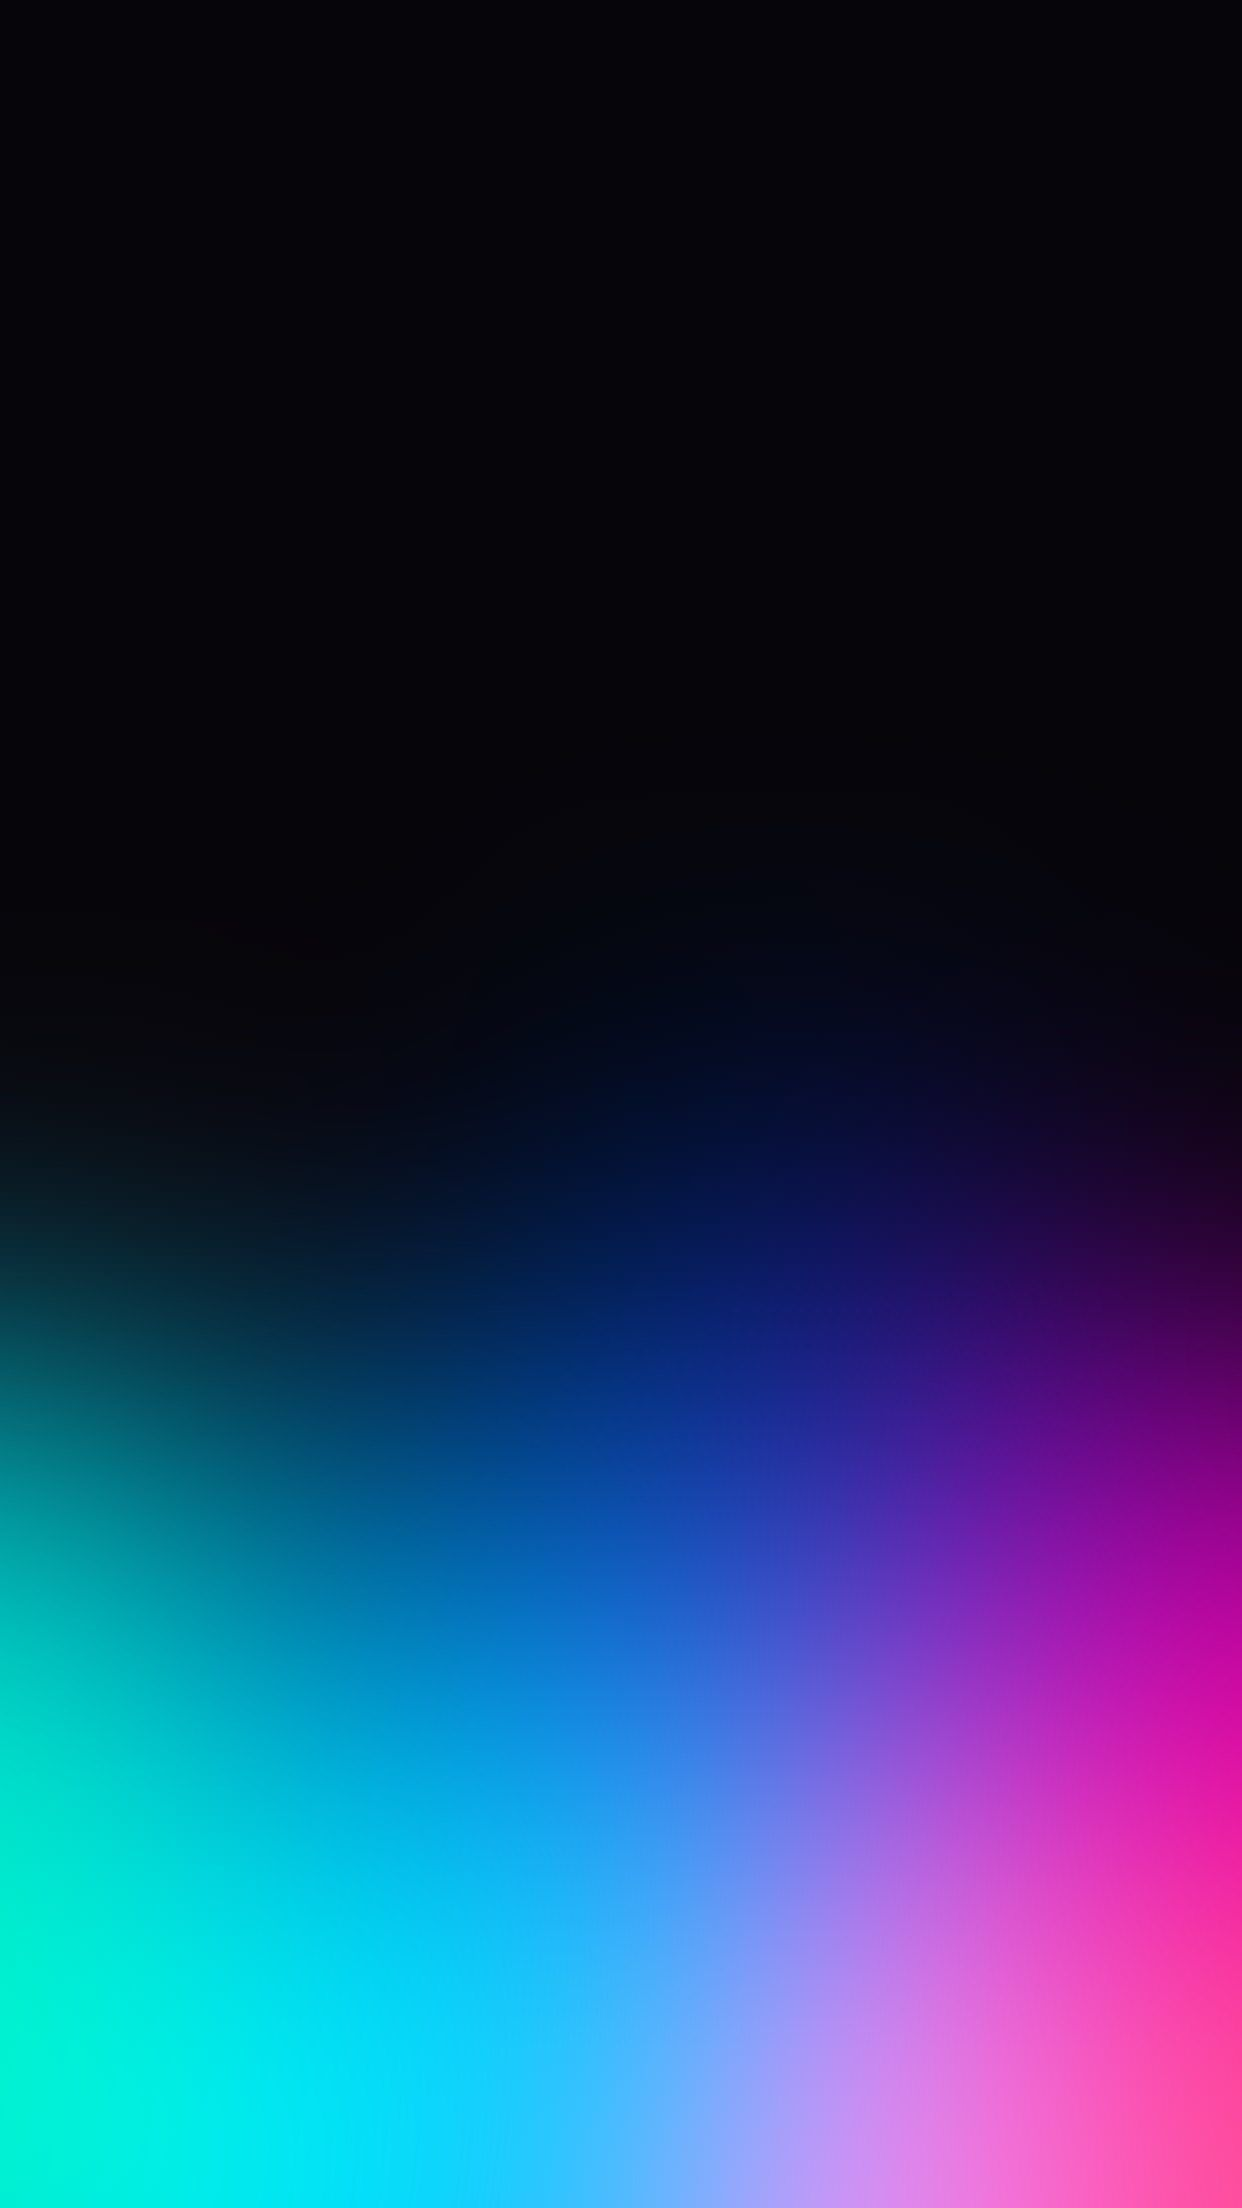 Beautiful Gradient Hides The Notch With Images Wall Paper